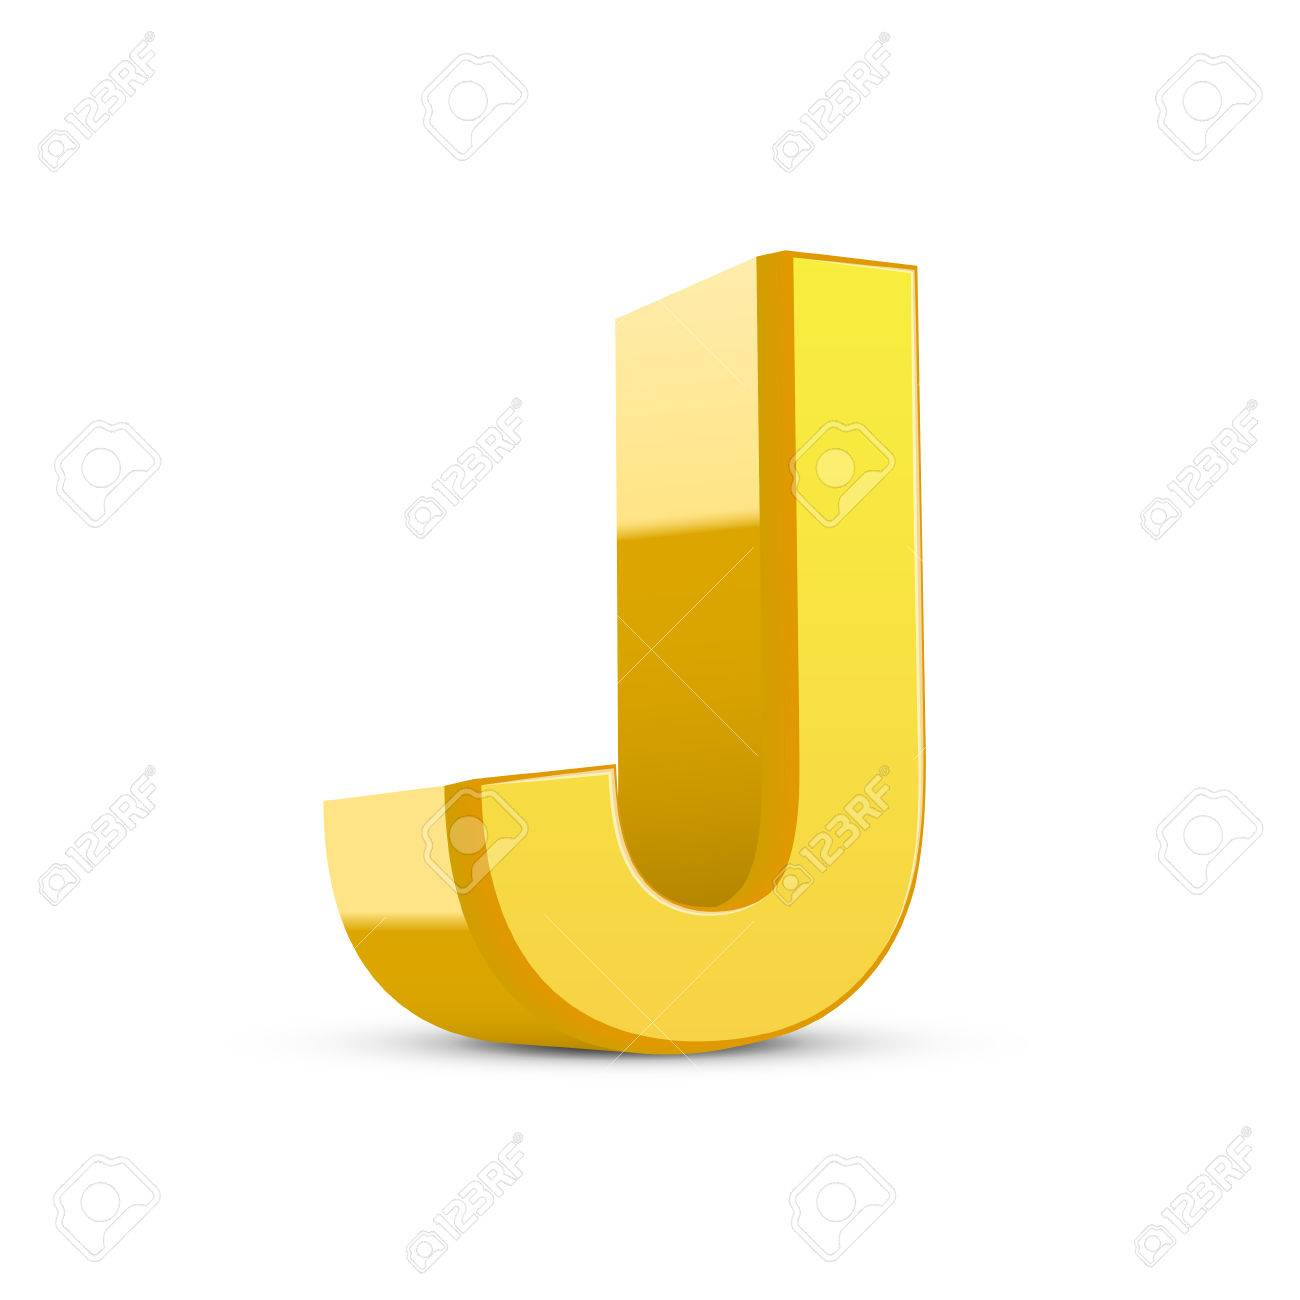 3d Image Yellow Letter J Isolated On White Background Royalty Free